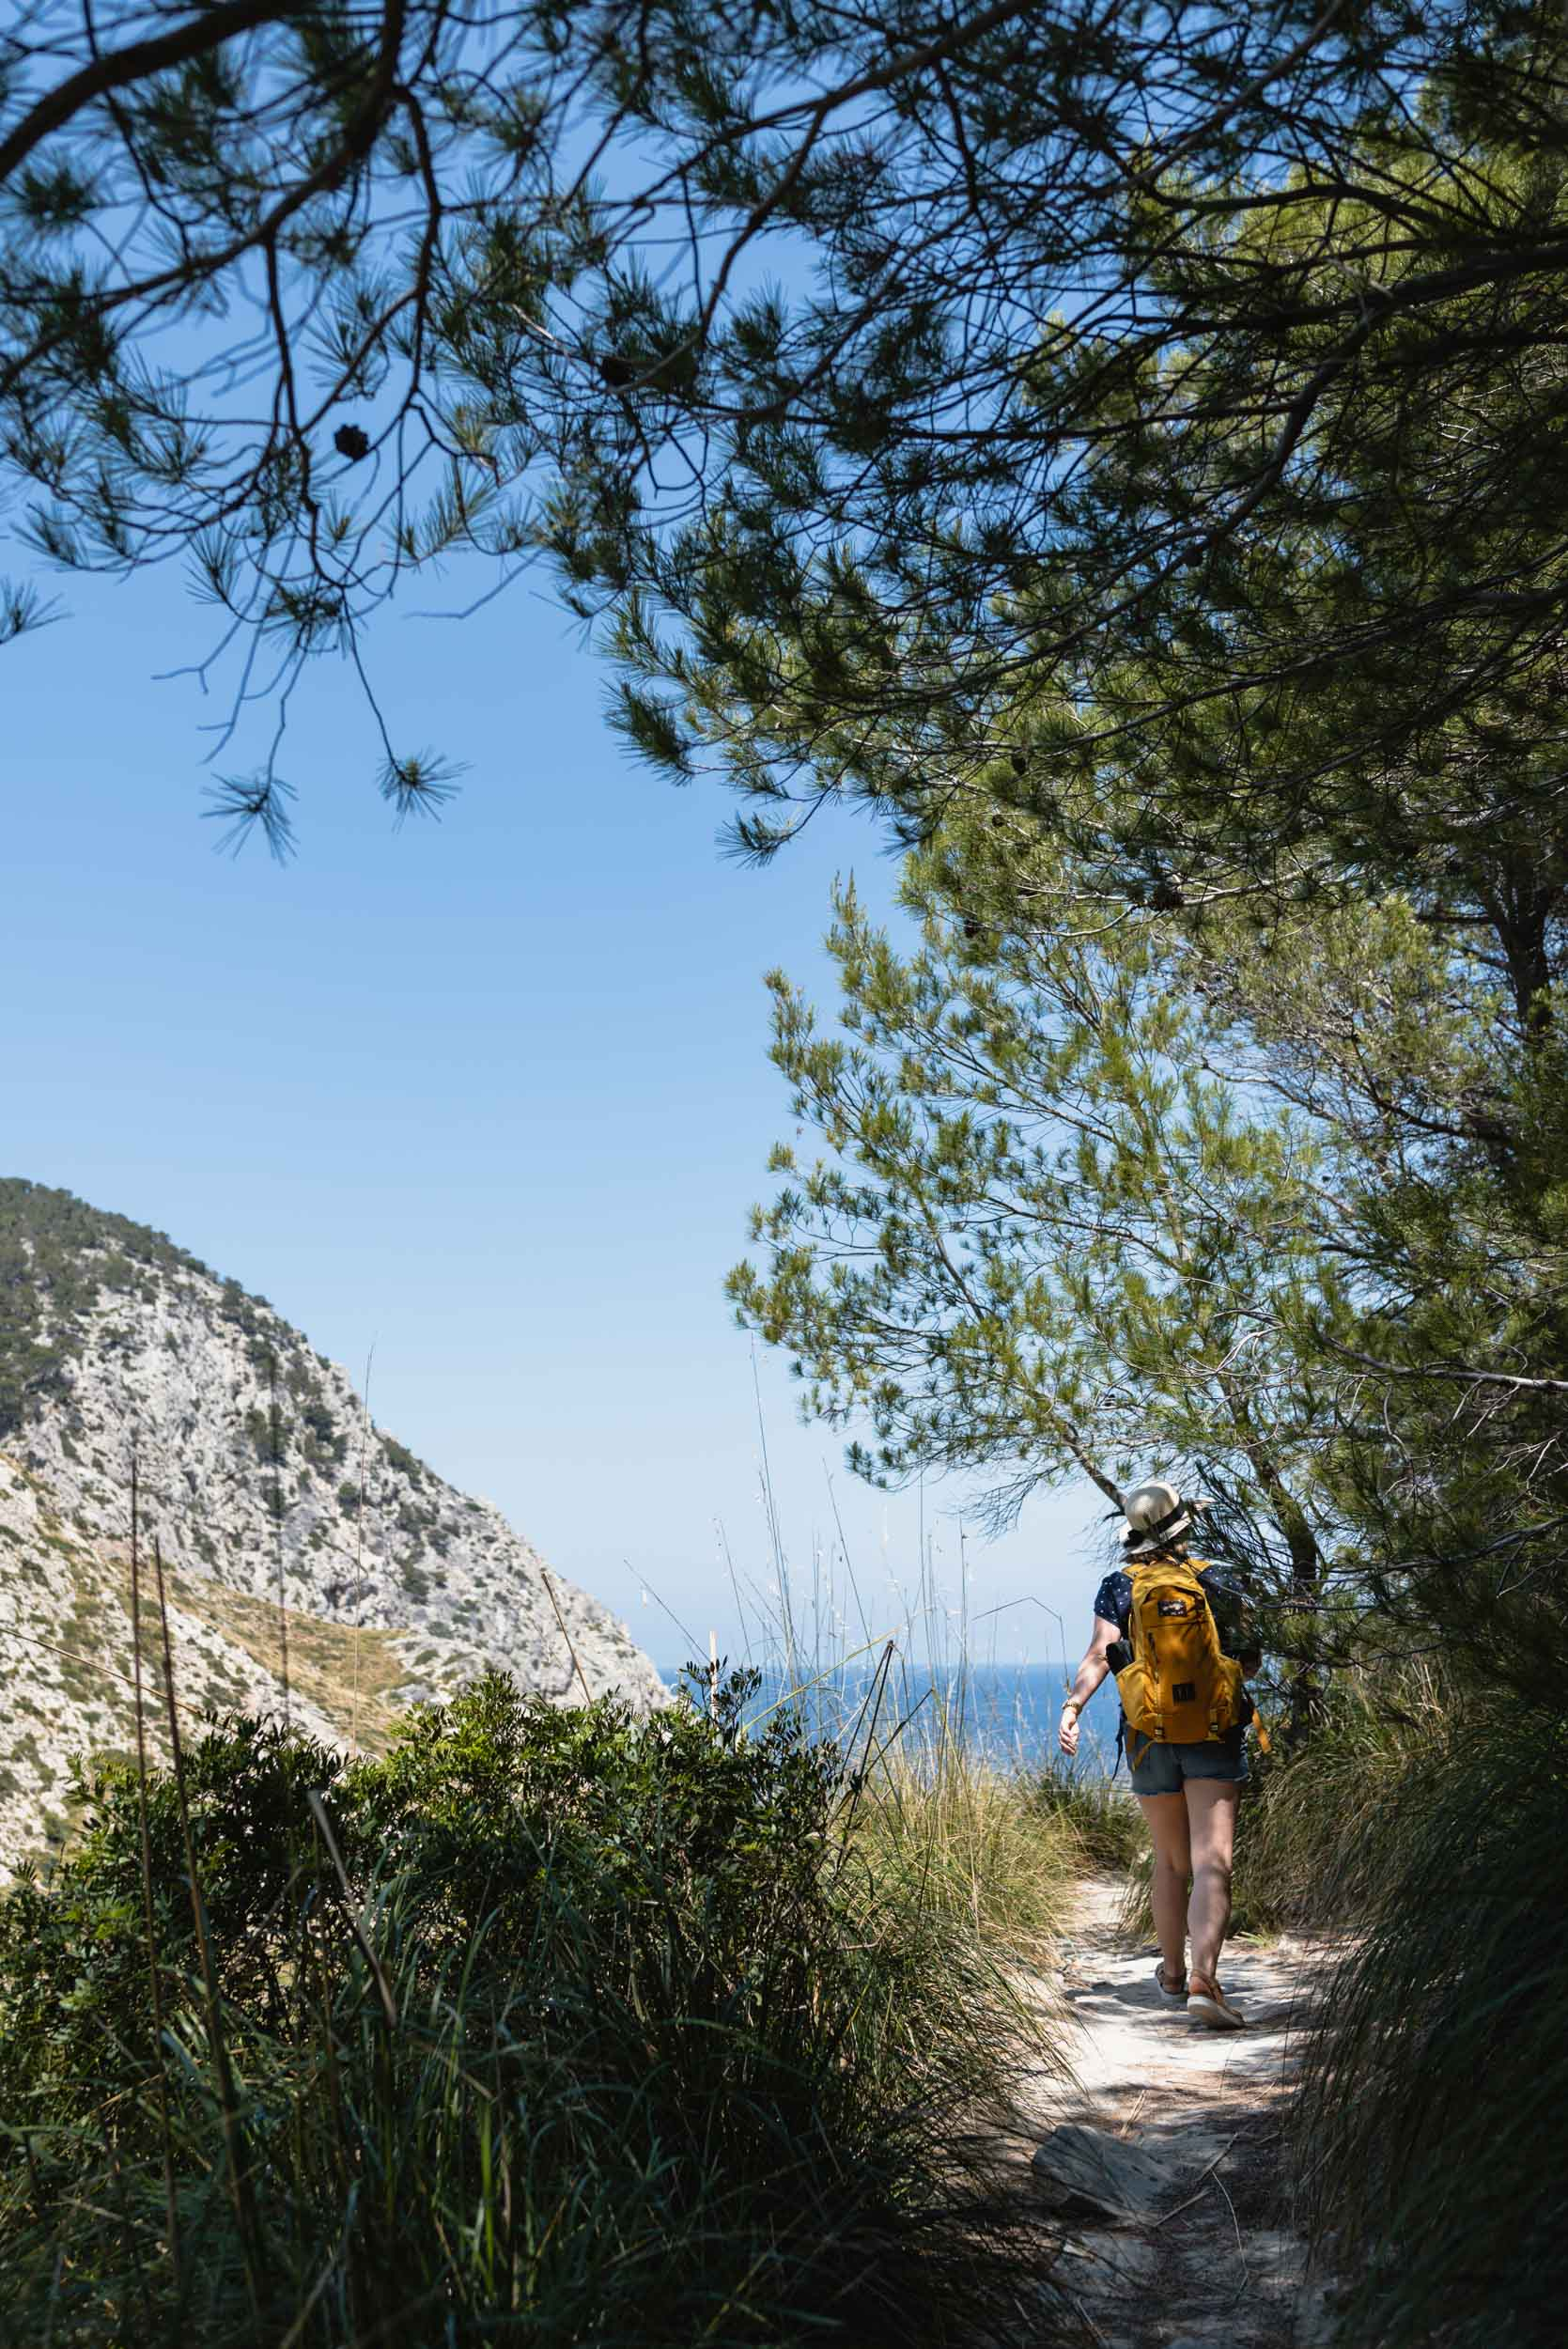 Walking down trail to Cala Figuera